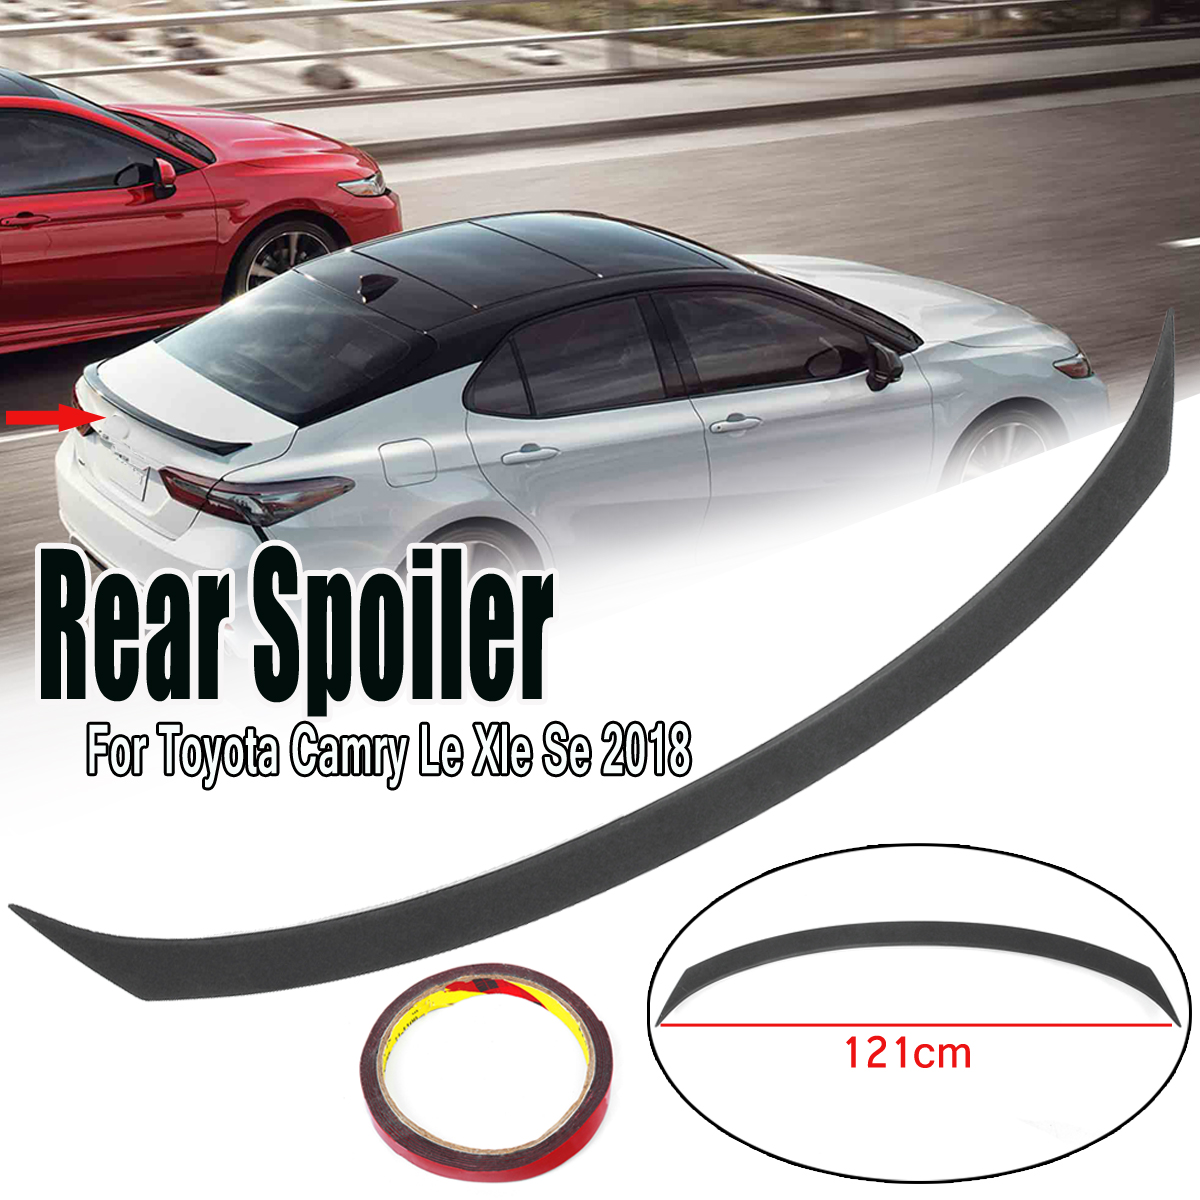 Car Rear Trunk Lid Spoiler Wing Hybrid Sport Style for Toyota Camry Le Xle  Se 2018 Car Styling Exterior Accessories-in Spoilers & Wings from  Automobiles ...